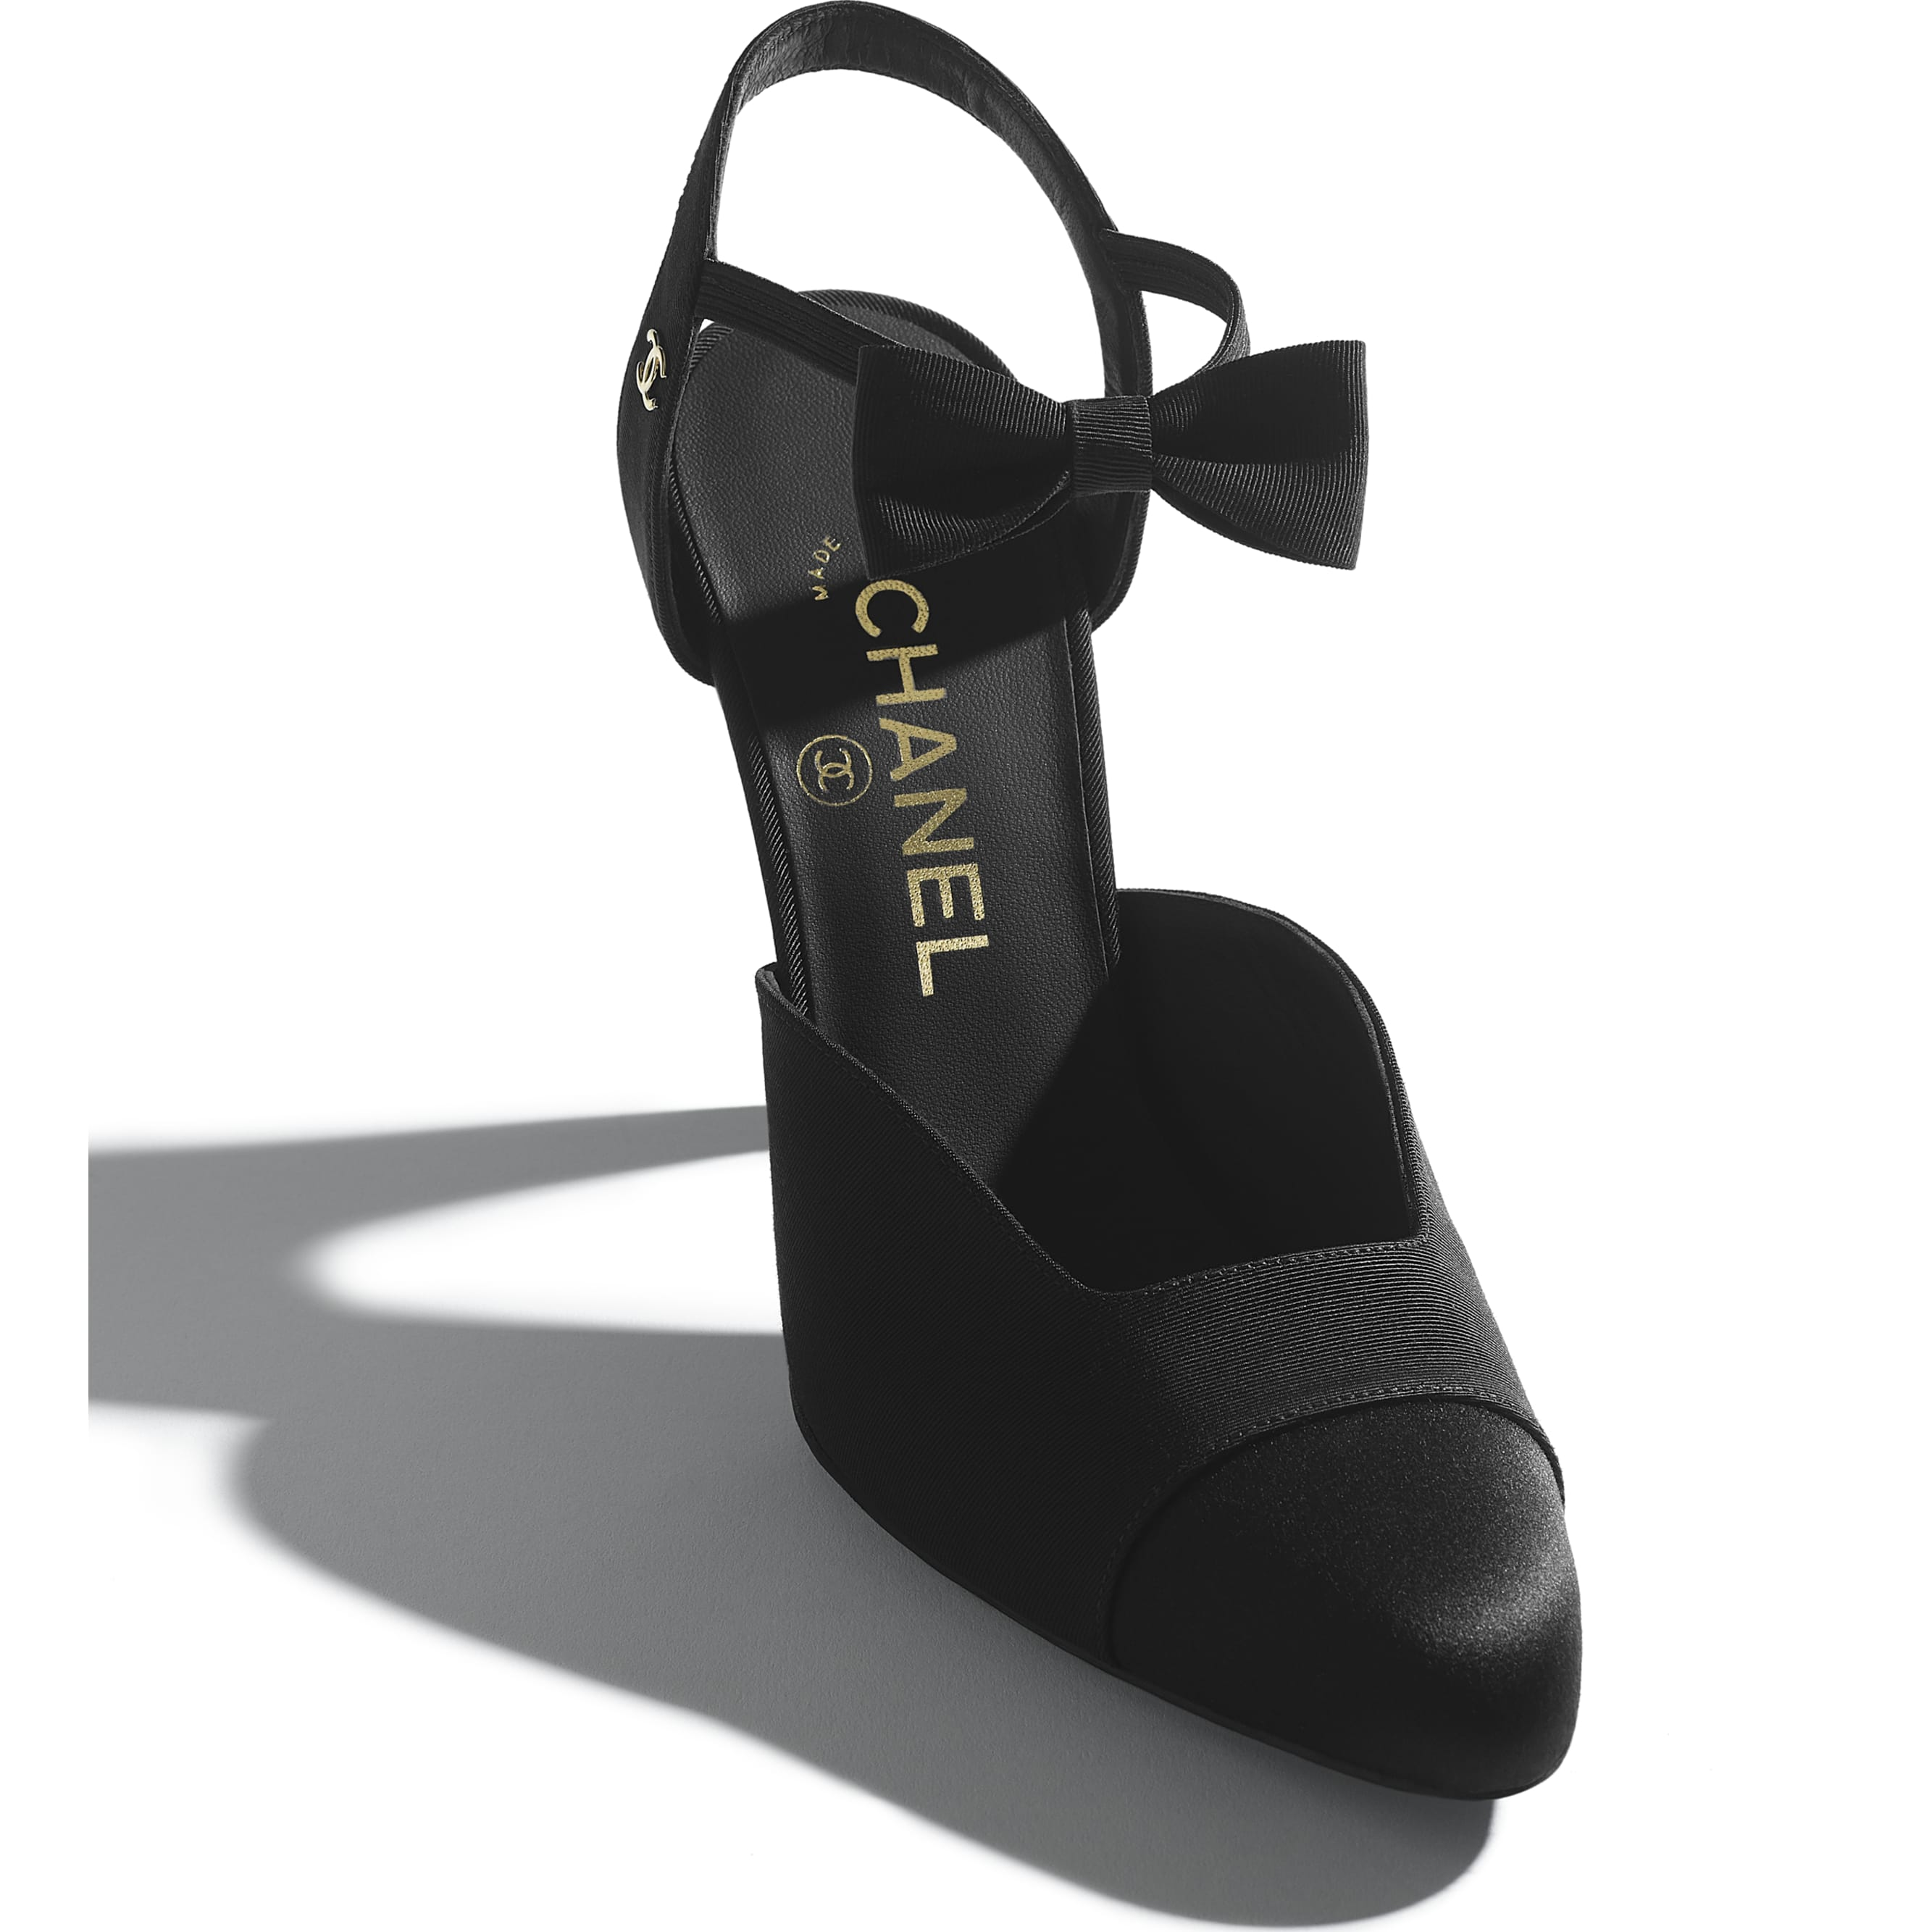 Pumps - Black - Grosgrain & Satin - CHANEL - Extra view - see standard sized version